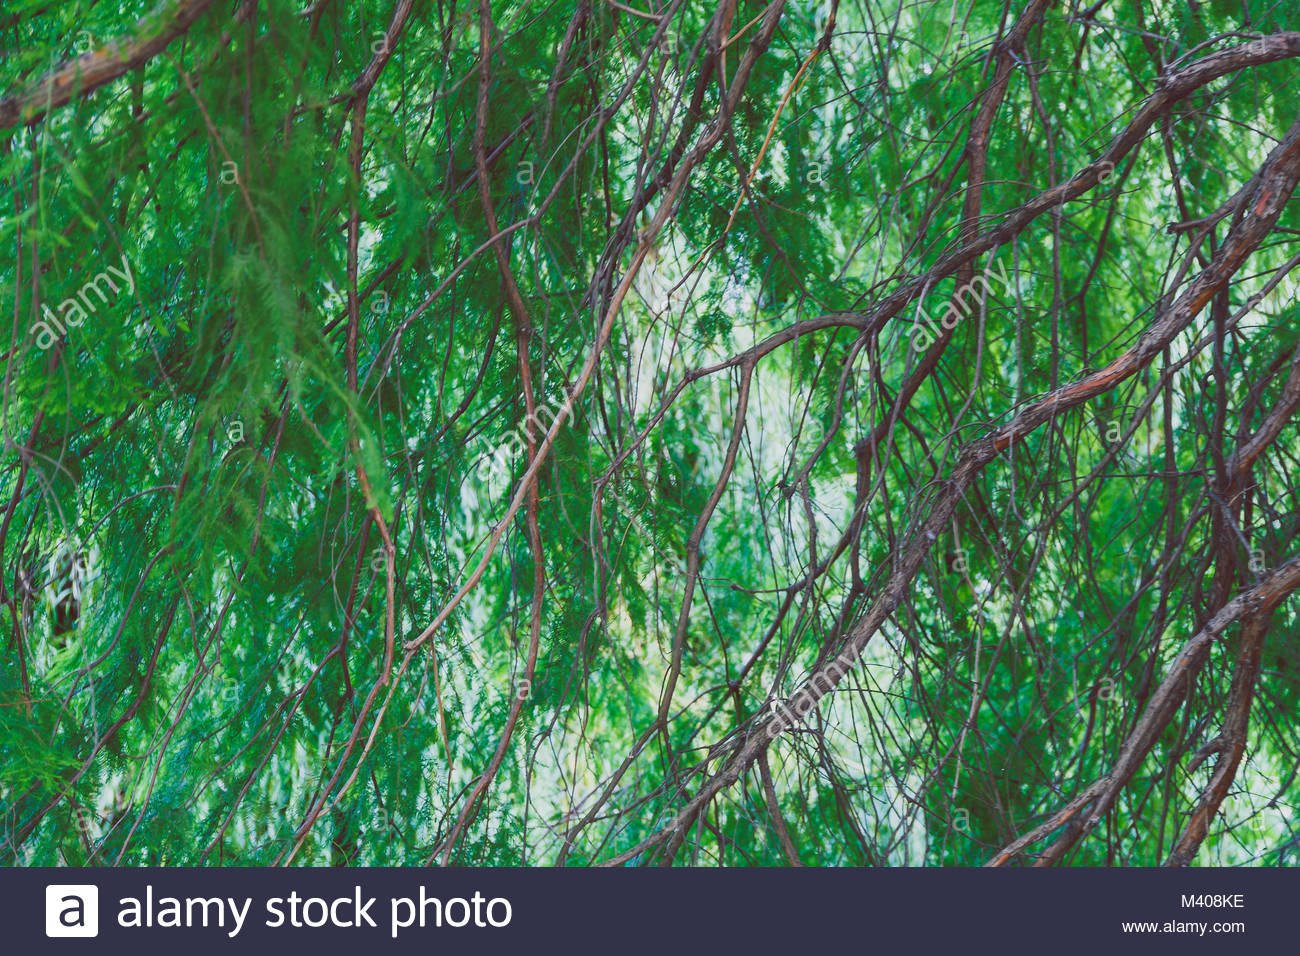 green branches with lushy leaves shot in Green Park London - Stock Image